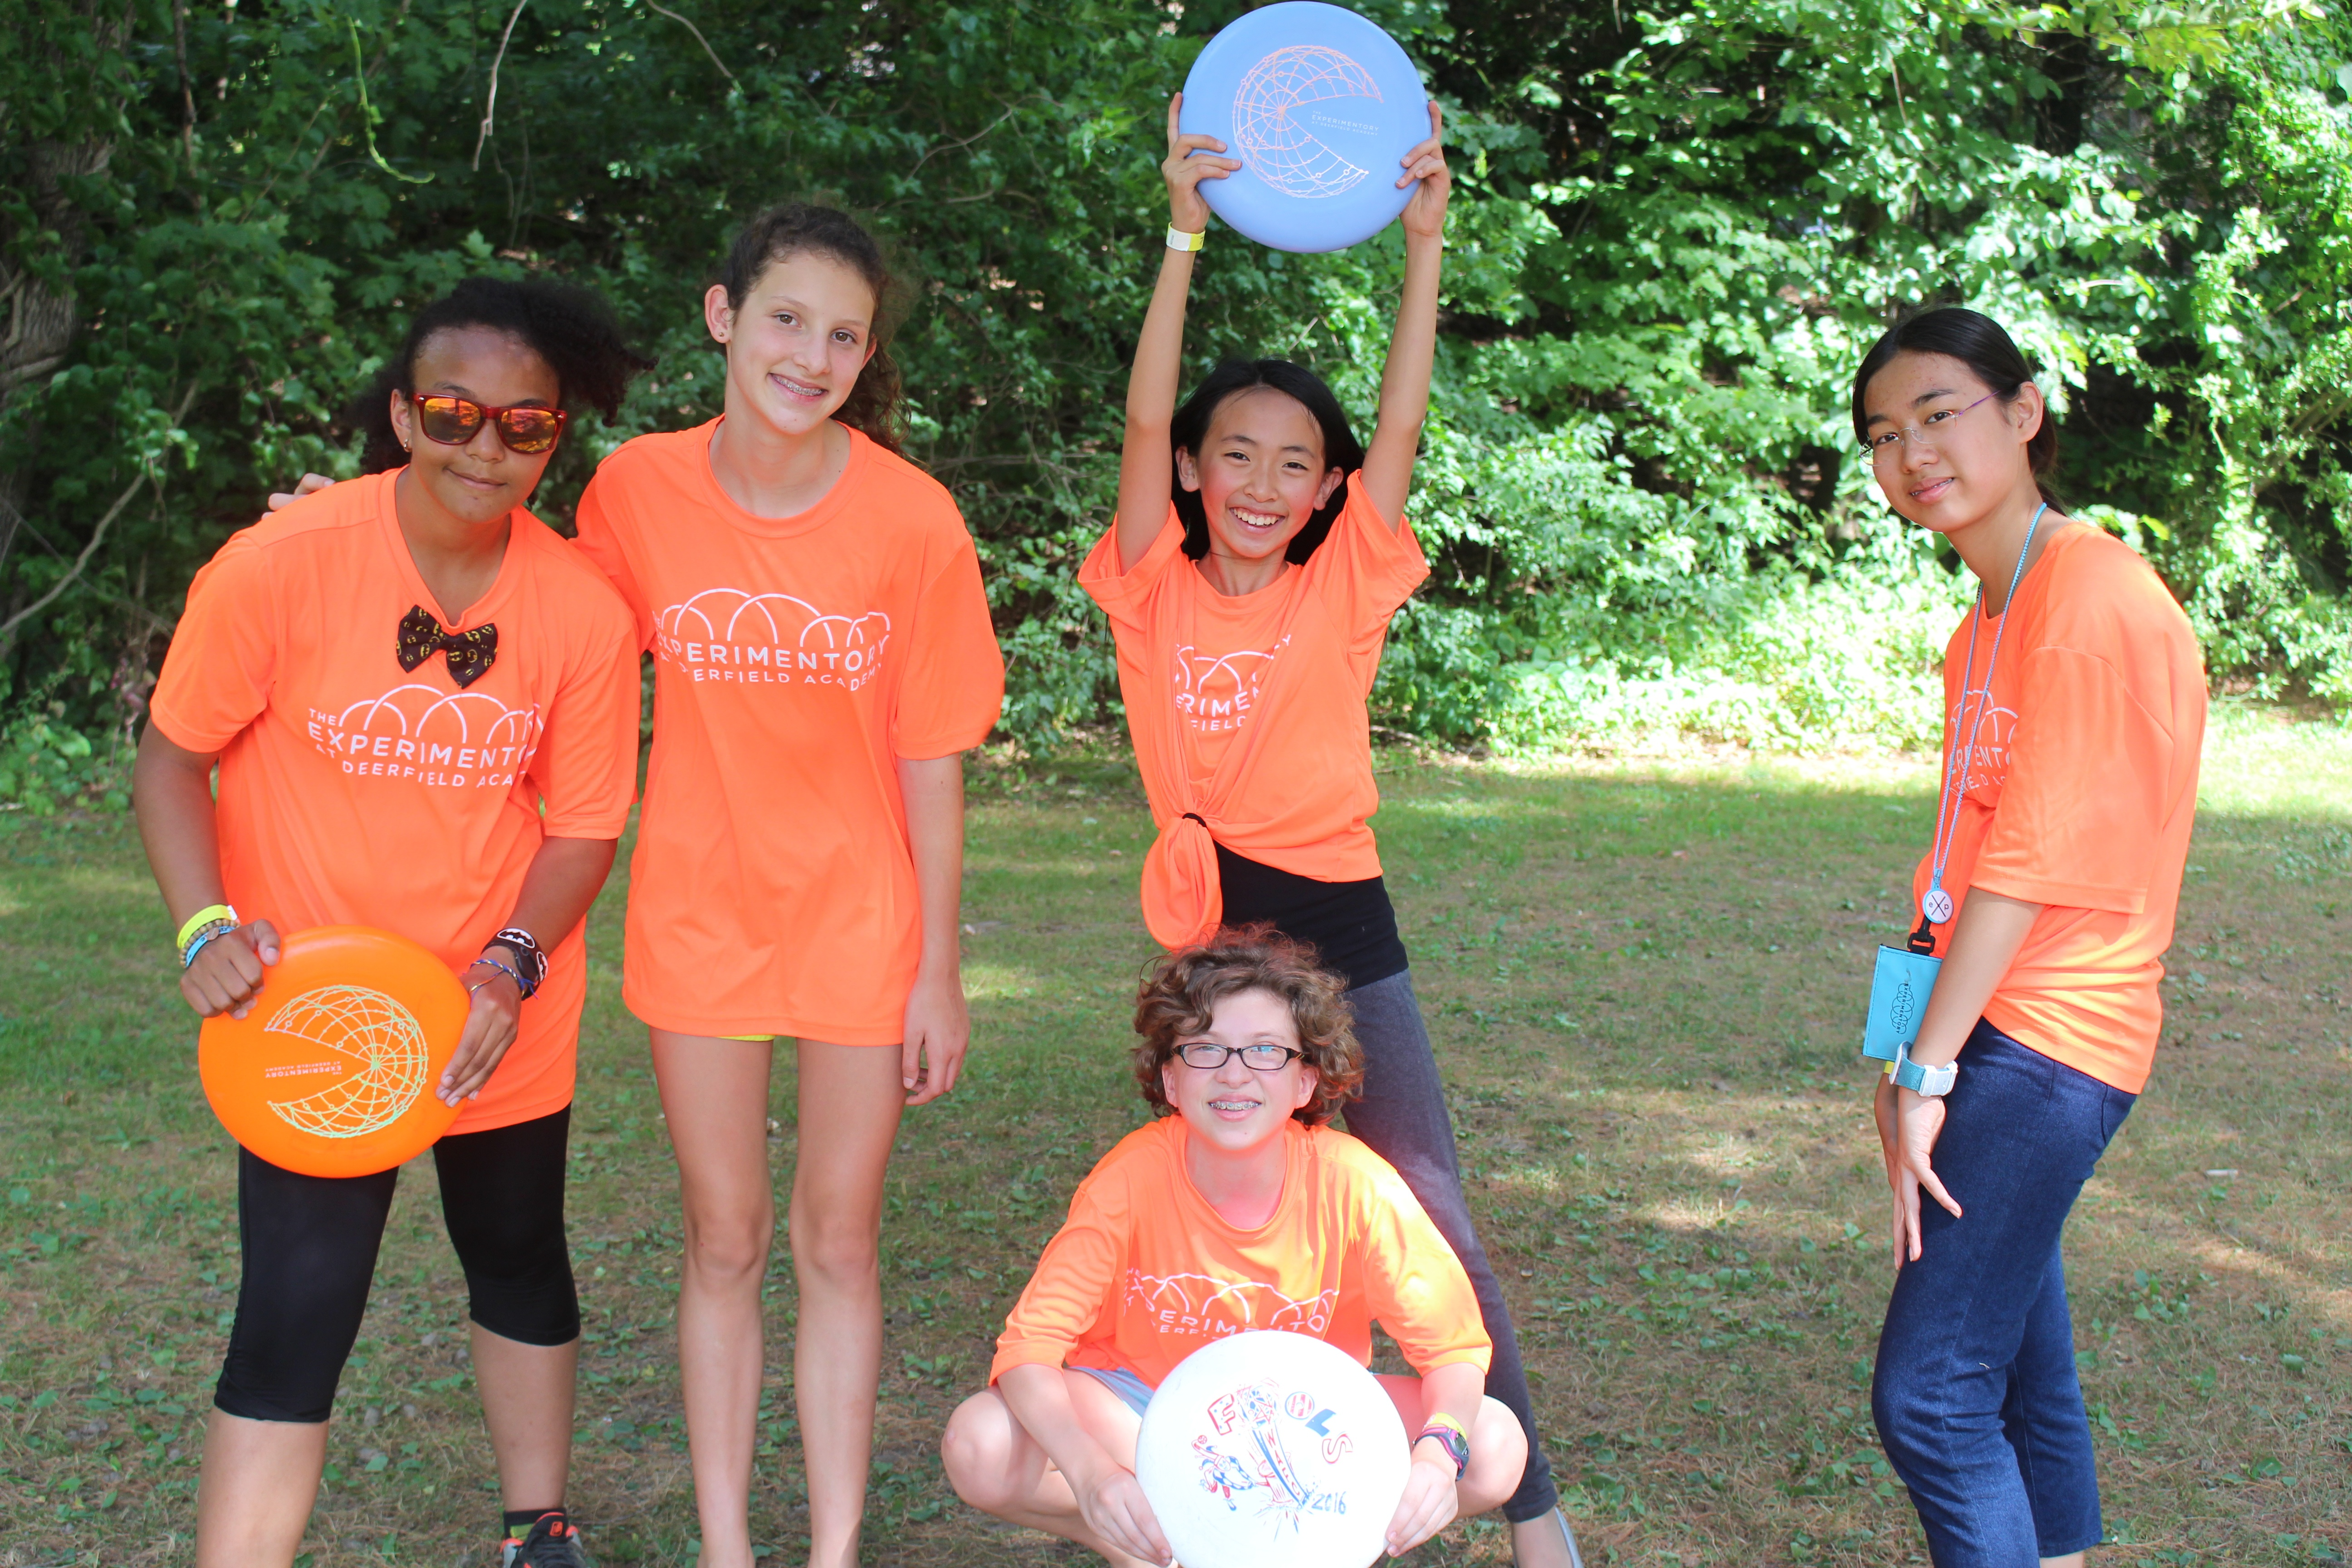 A group of Experimentory girls play frisbee after our picnic.